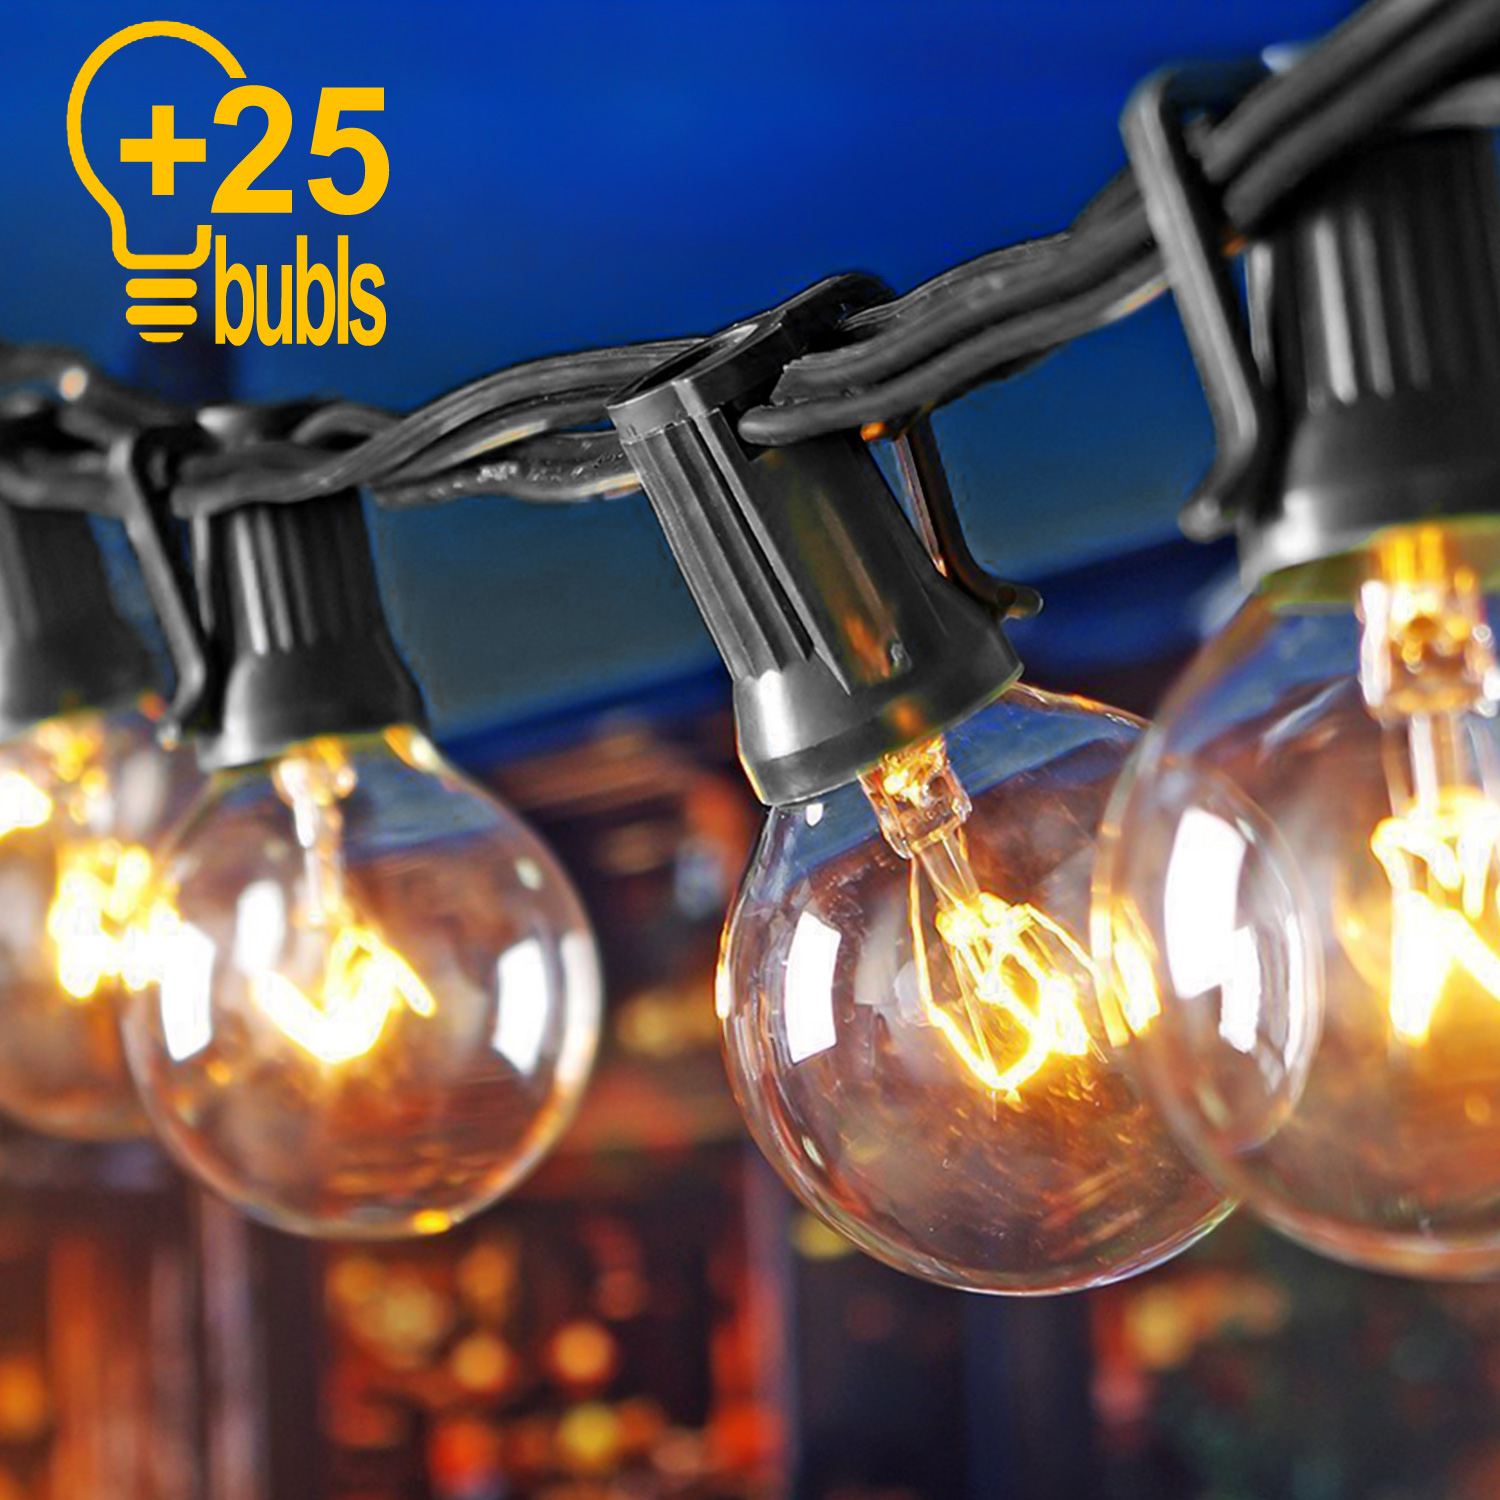 25 Bulb Led Globe String Light Christmas G40 Fairy Patio Garden Party Wedding Backyard Street Outdoor Decoration Light25 Bulb Led Globe String Light Christmas G40 Fairy Patio Garden Party Wedding Backyard Street Outdoor Decoration Light